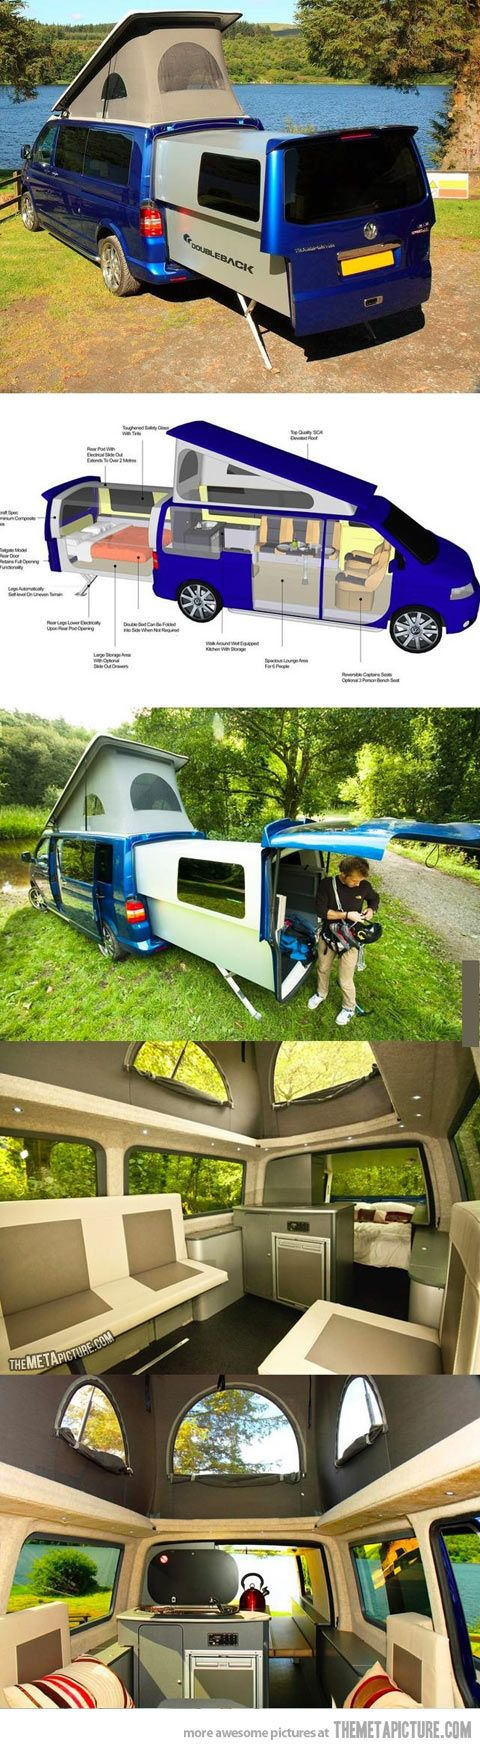 I want to go camping with this!